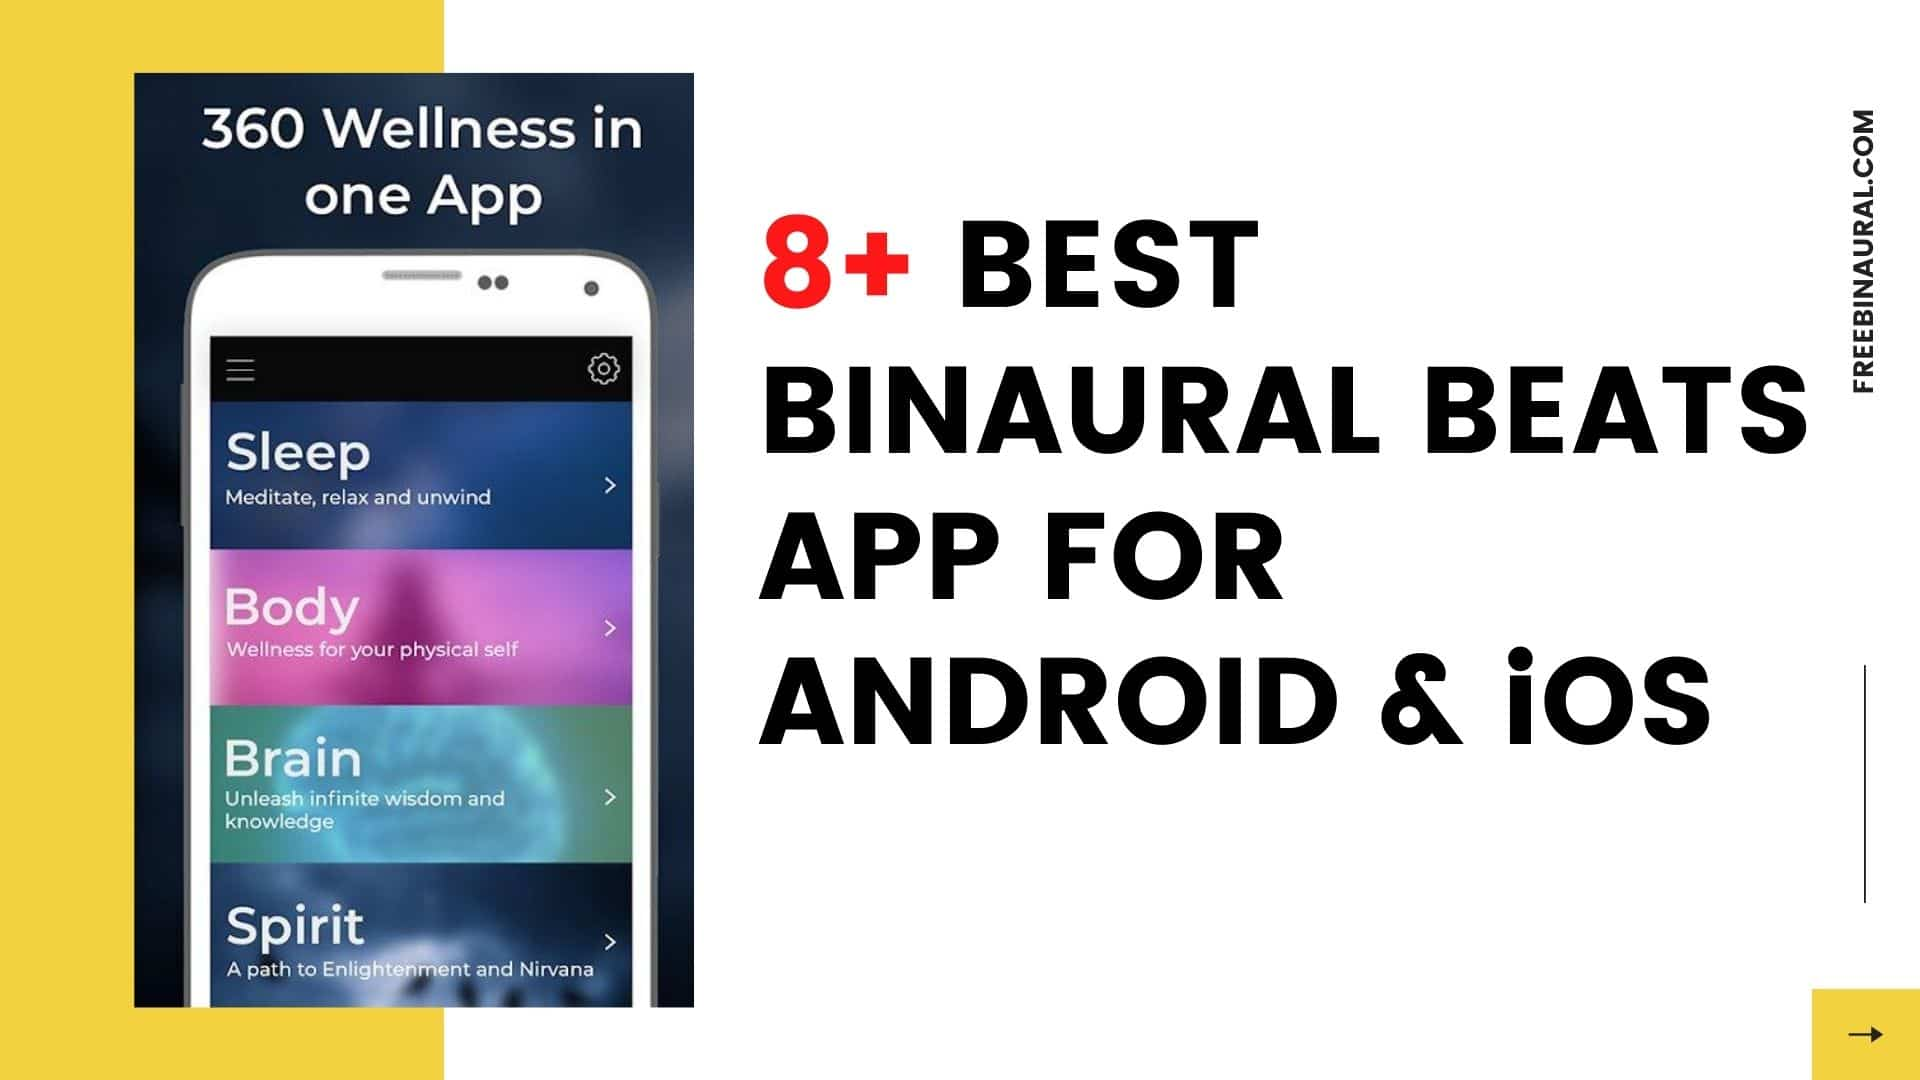 BEST BINAURAL BEATS APP FOR ANDROID & iOS (1)